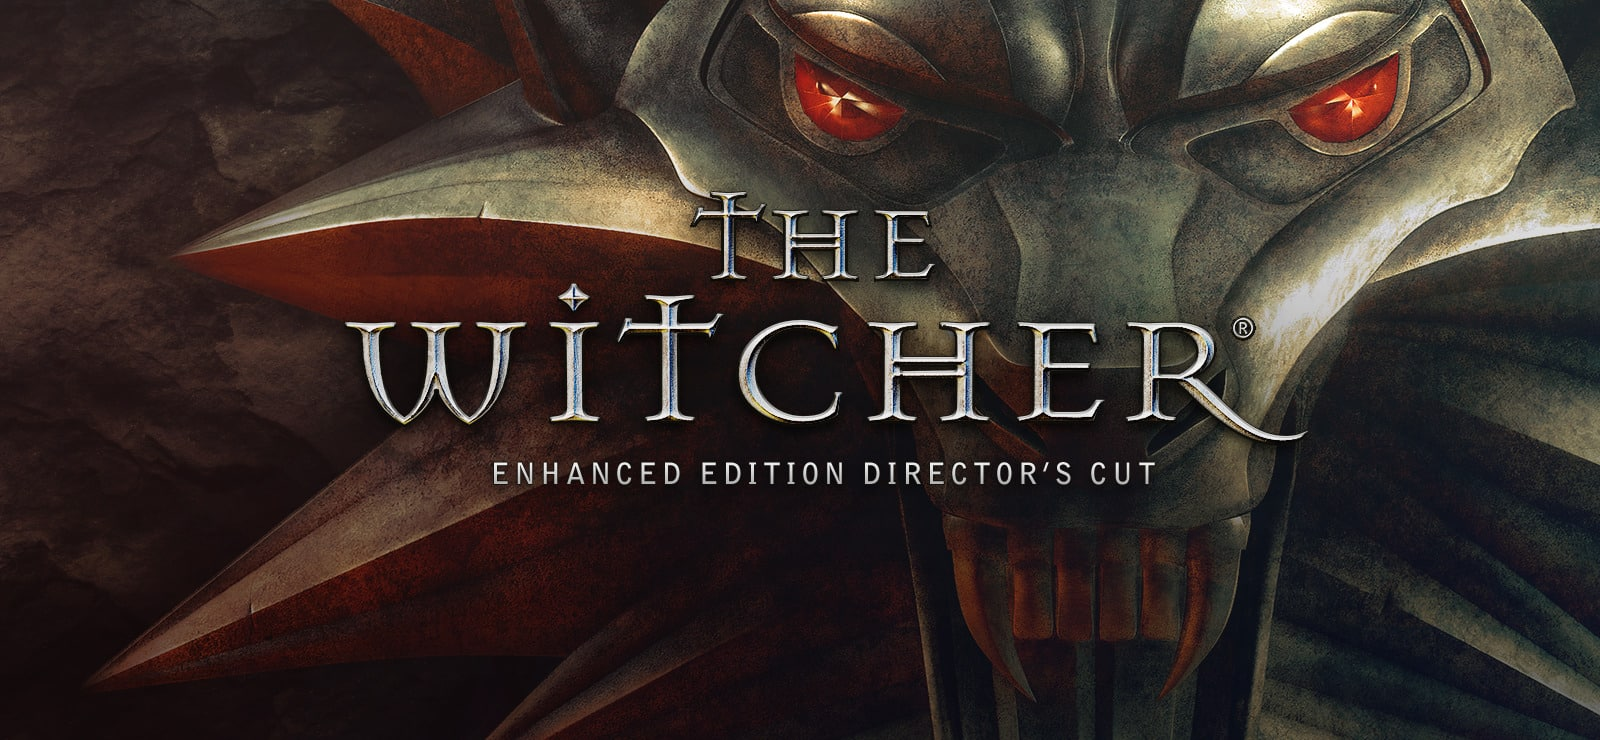 Witcher for free